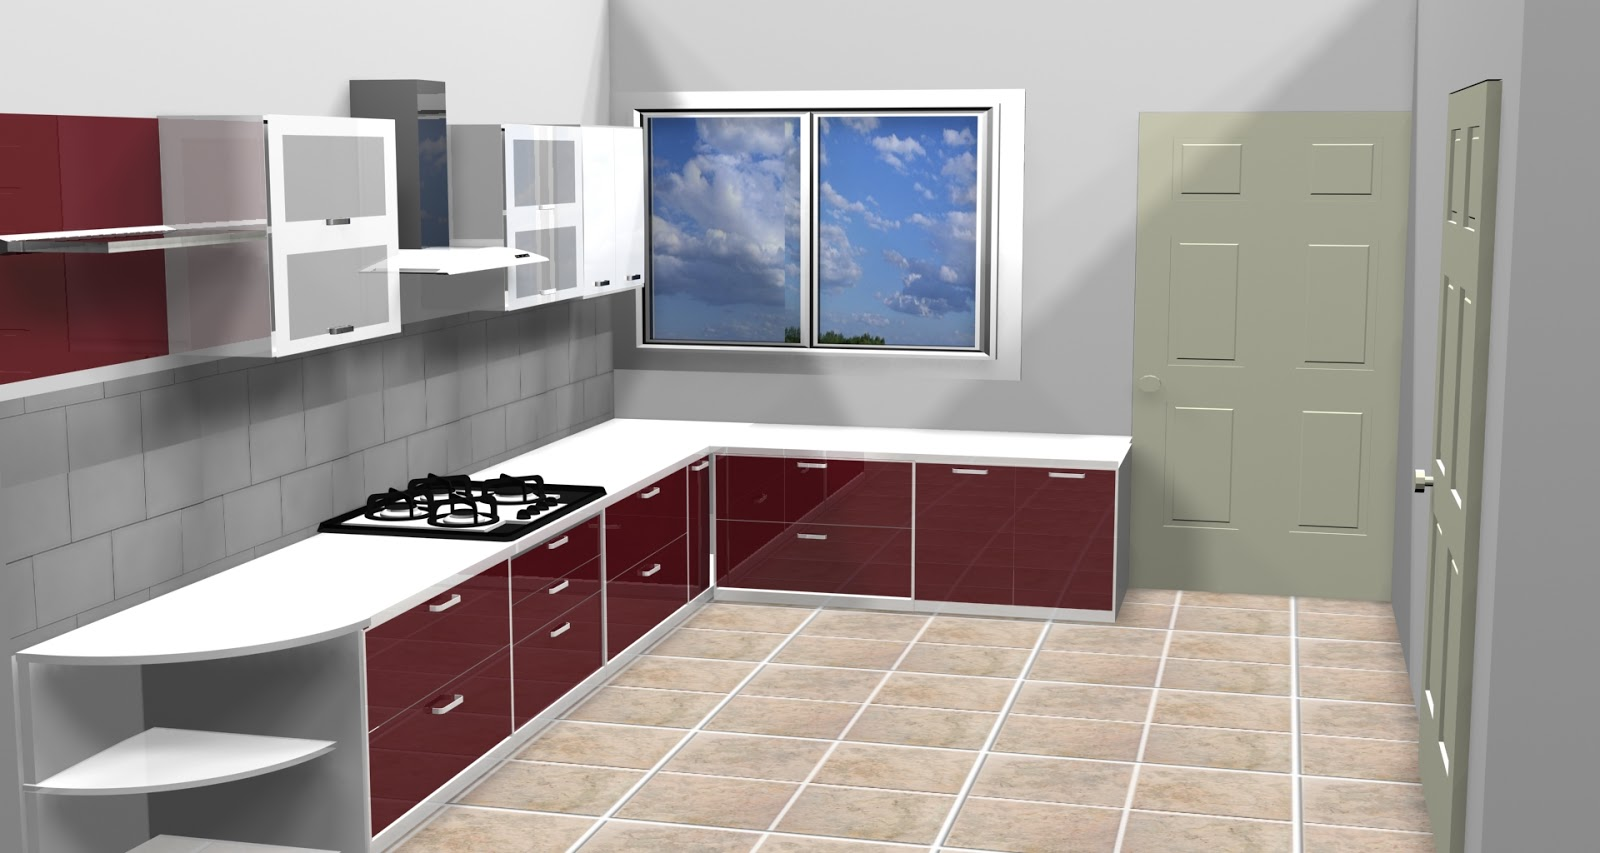 Vasant Kunj Kitchen Layout In 3Ds Max